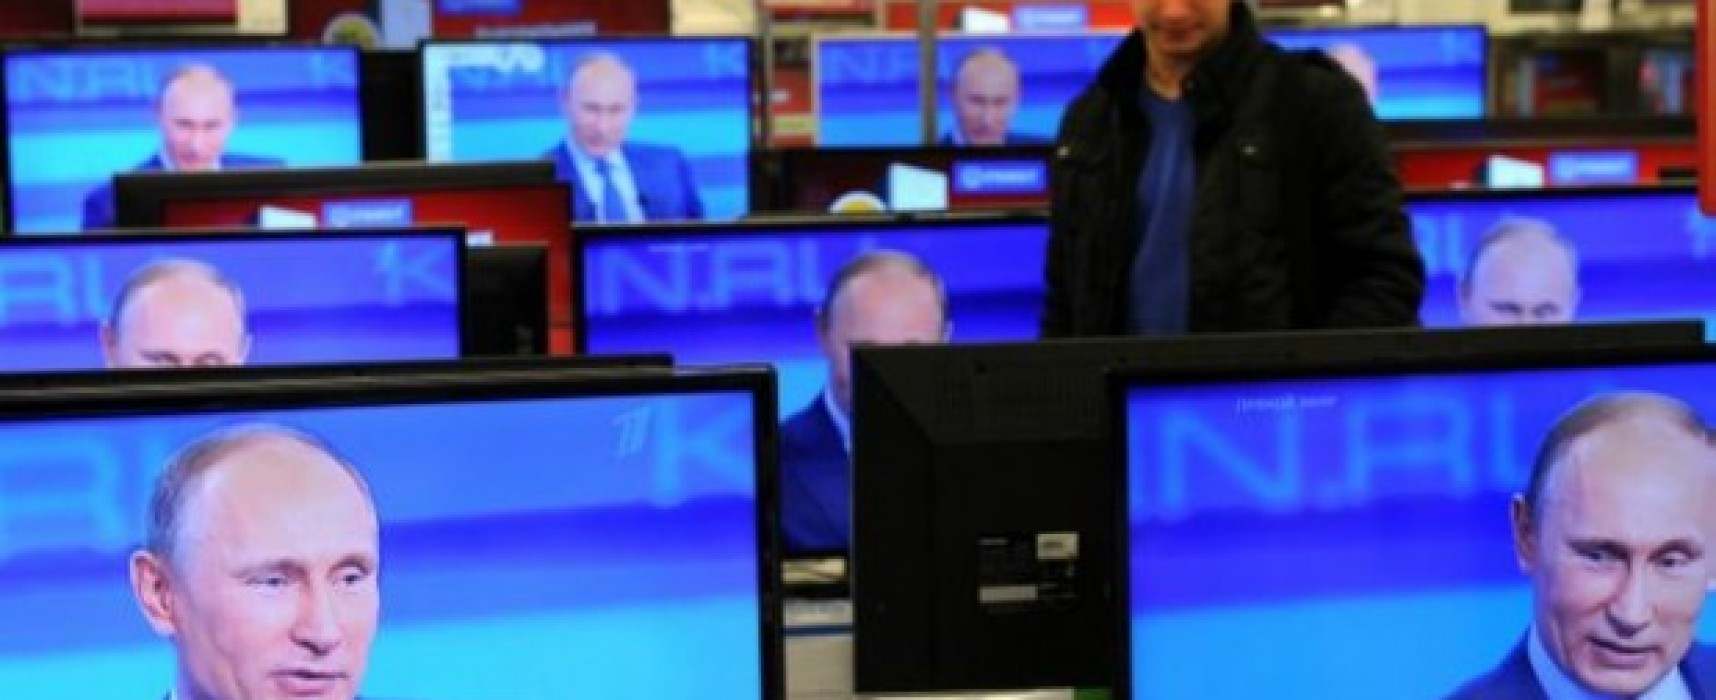 Putin is Operating a Counterfeit, Propoganda TV Station in Ukraine